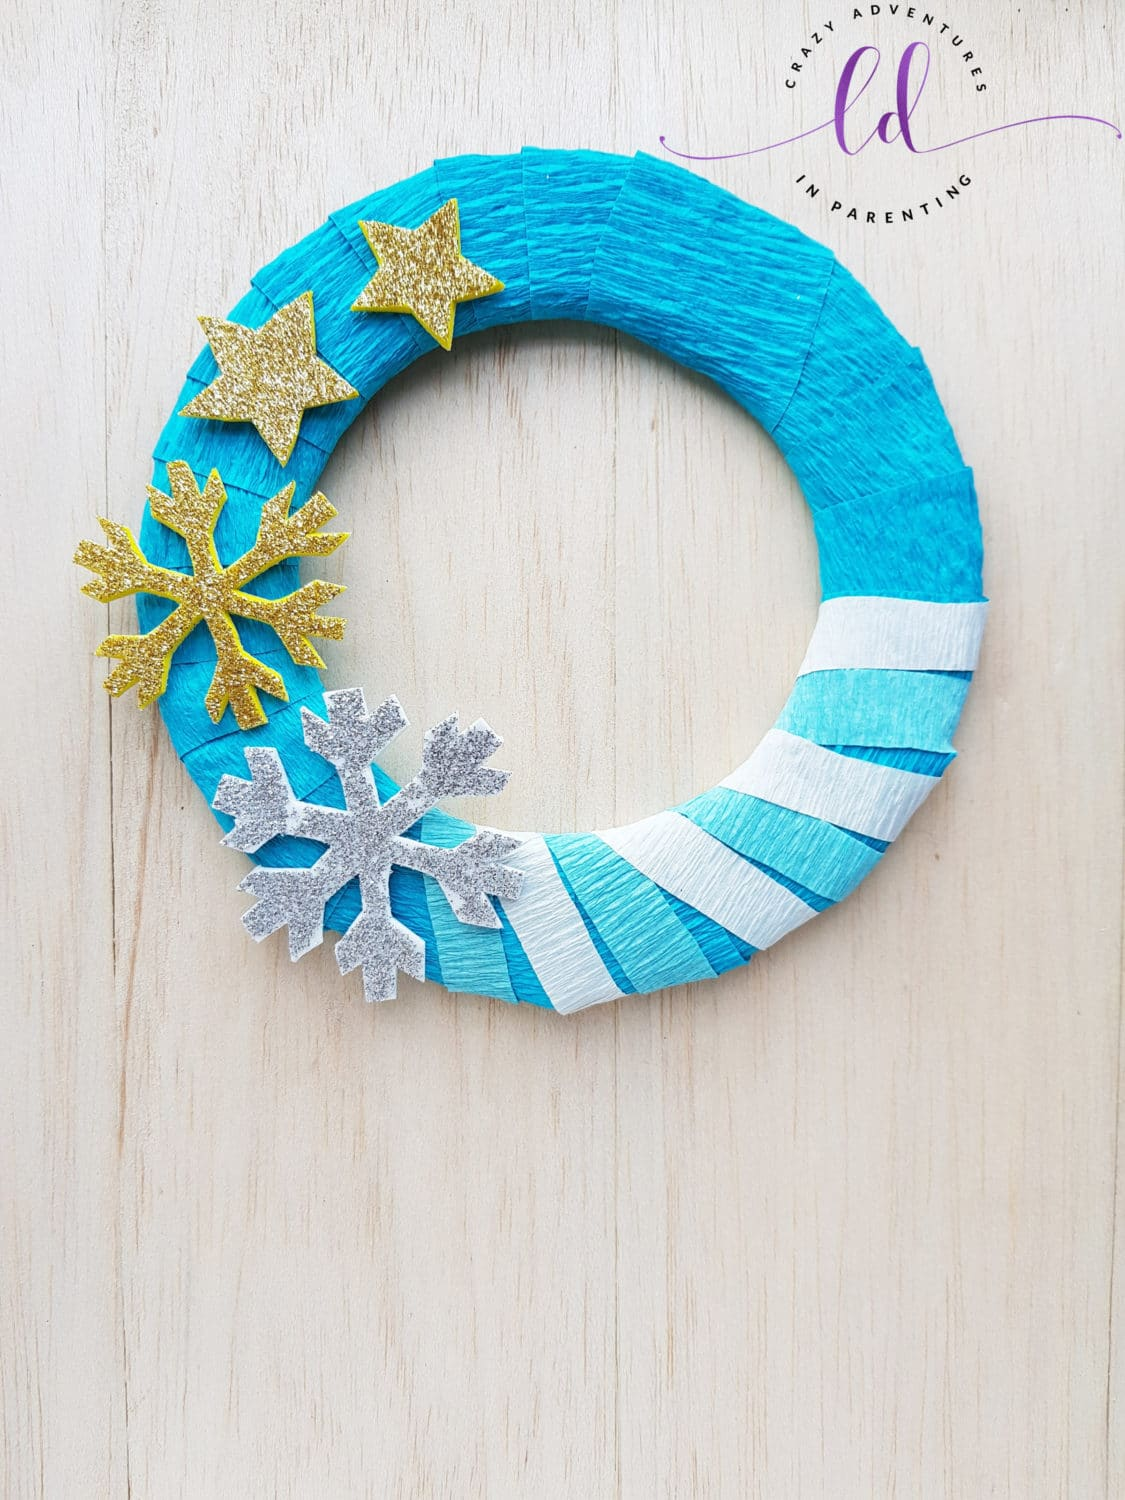 Super Easy Frozen Wreath Craft Tutorial for Kids